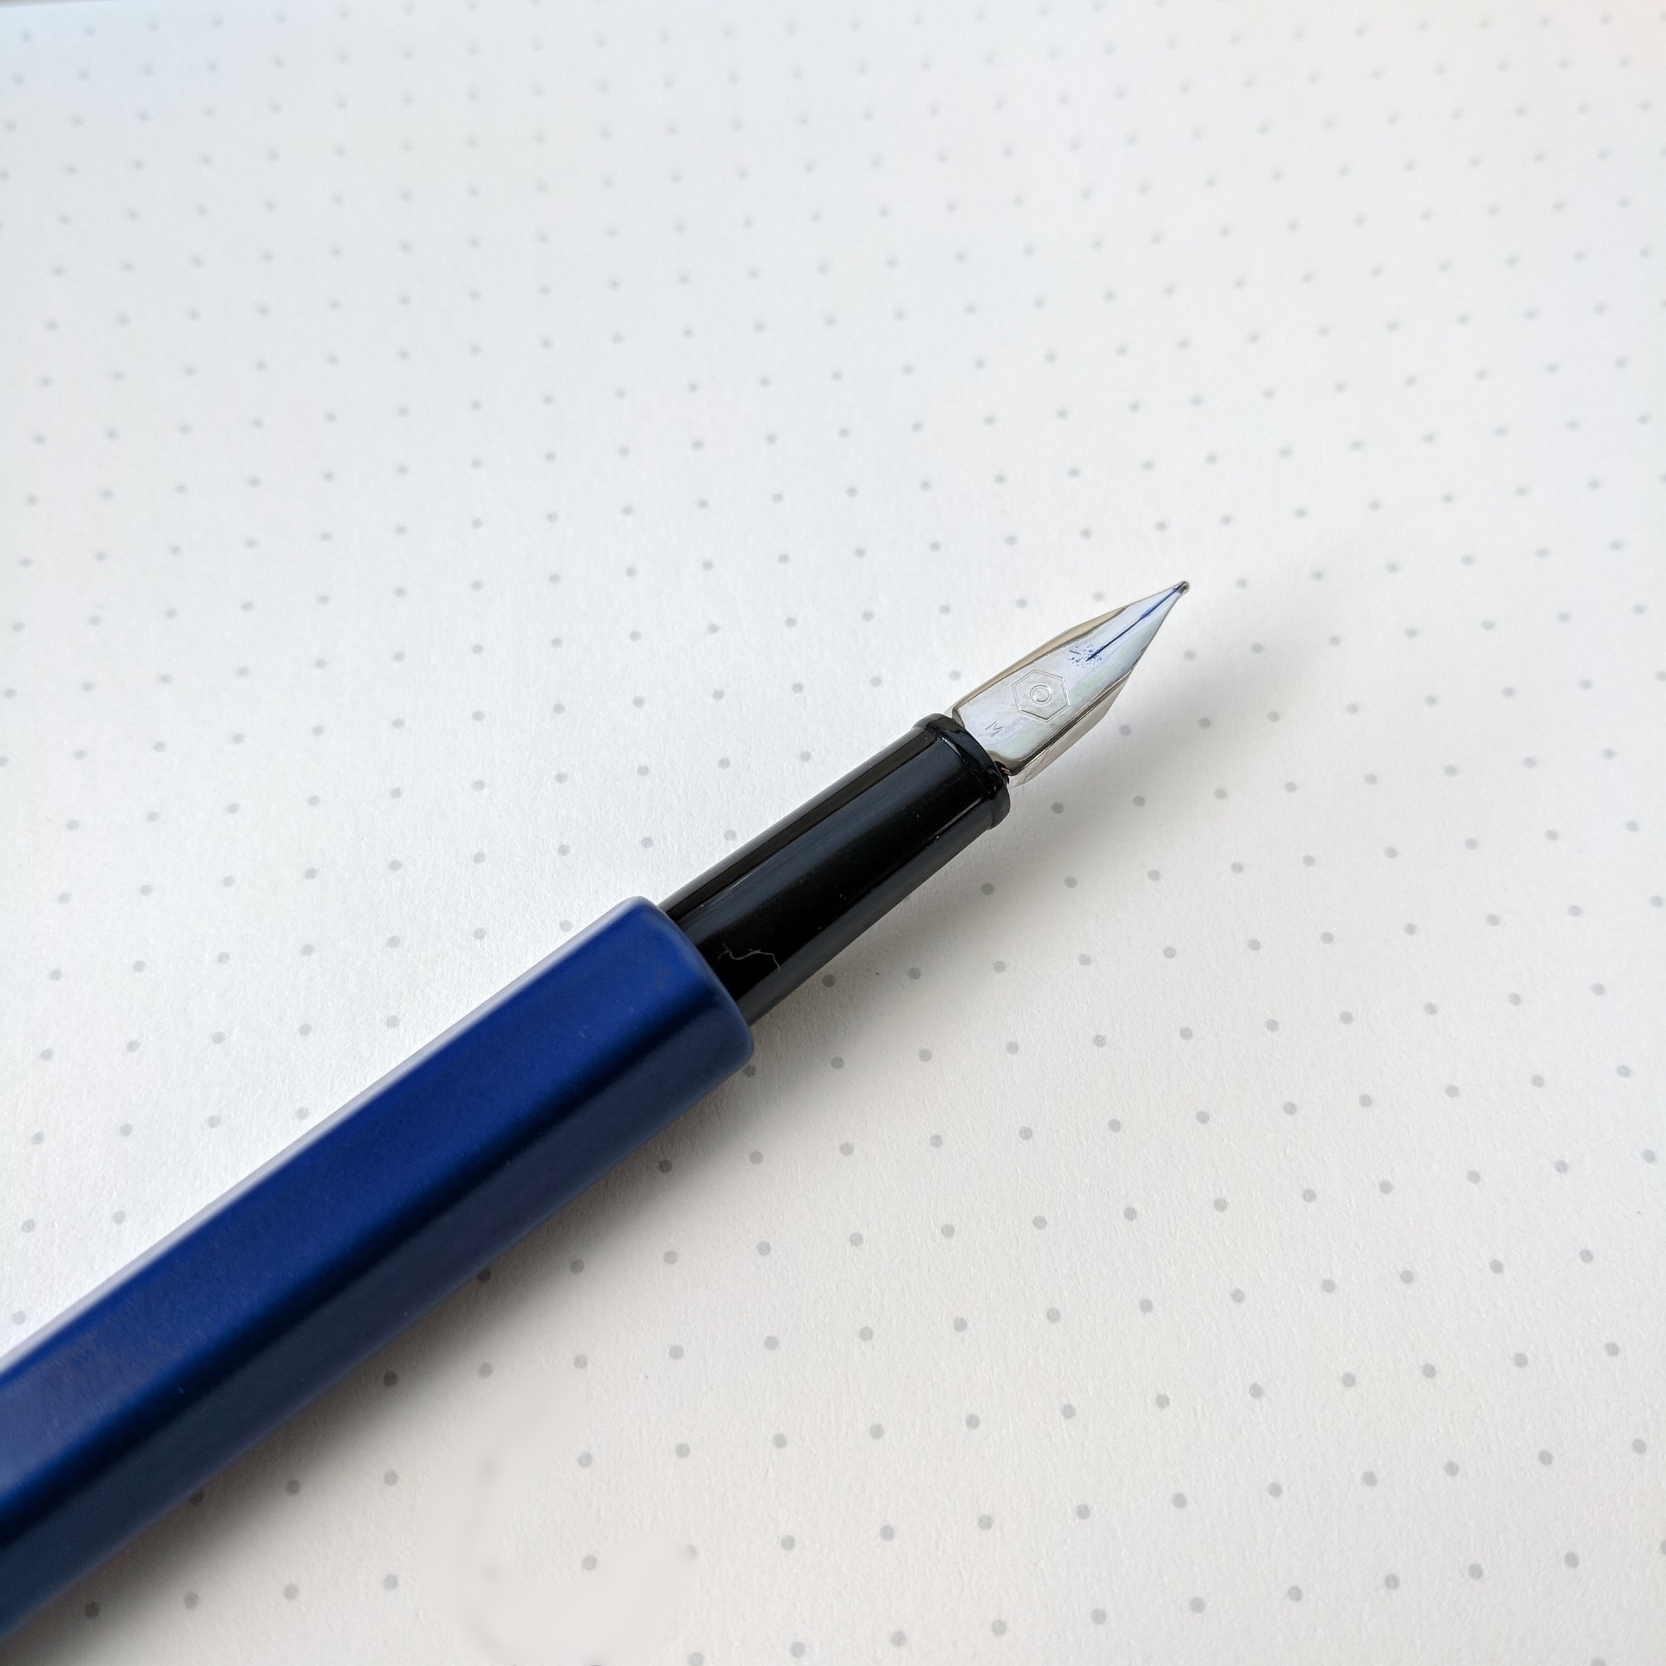 The shape of the nib on the Caran d'Ache 849 is almost Lamy-esque. While the nib is NOT flexible, it does have some slight bounce to it.